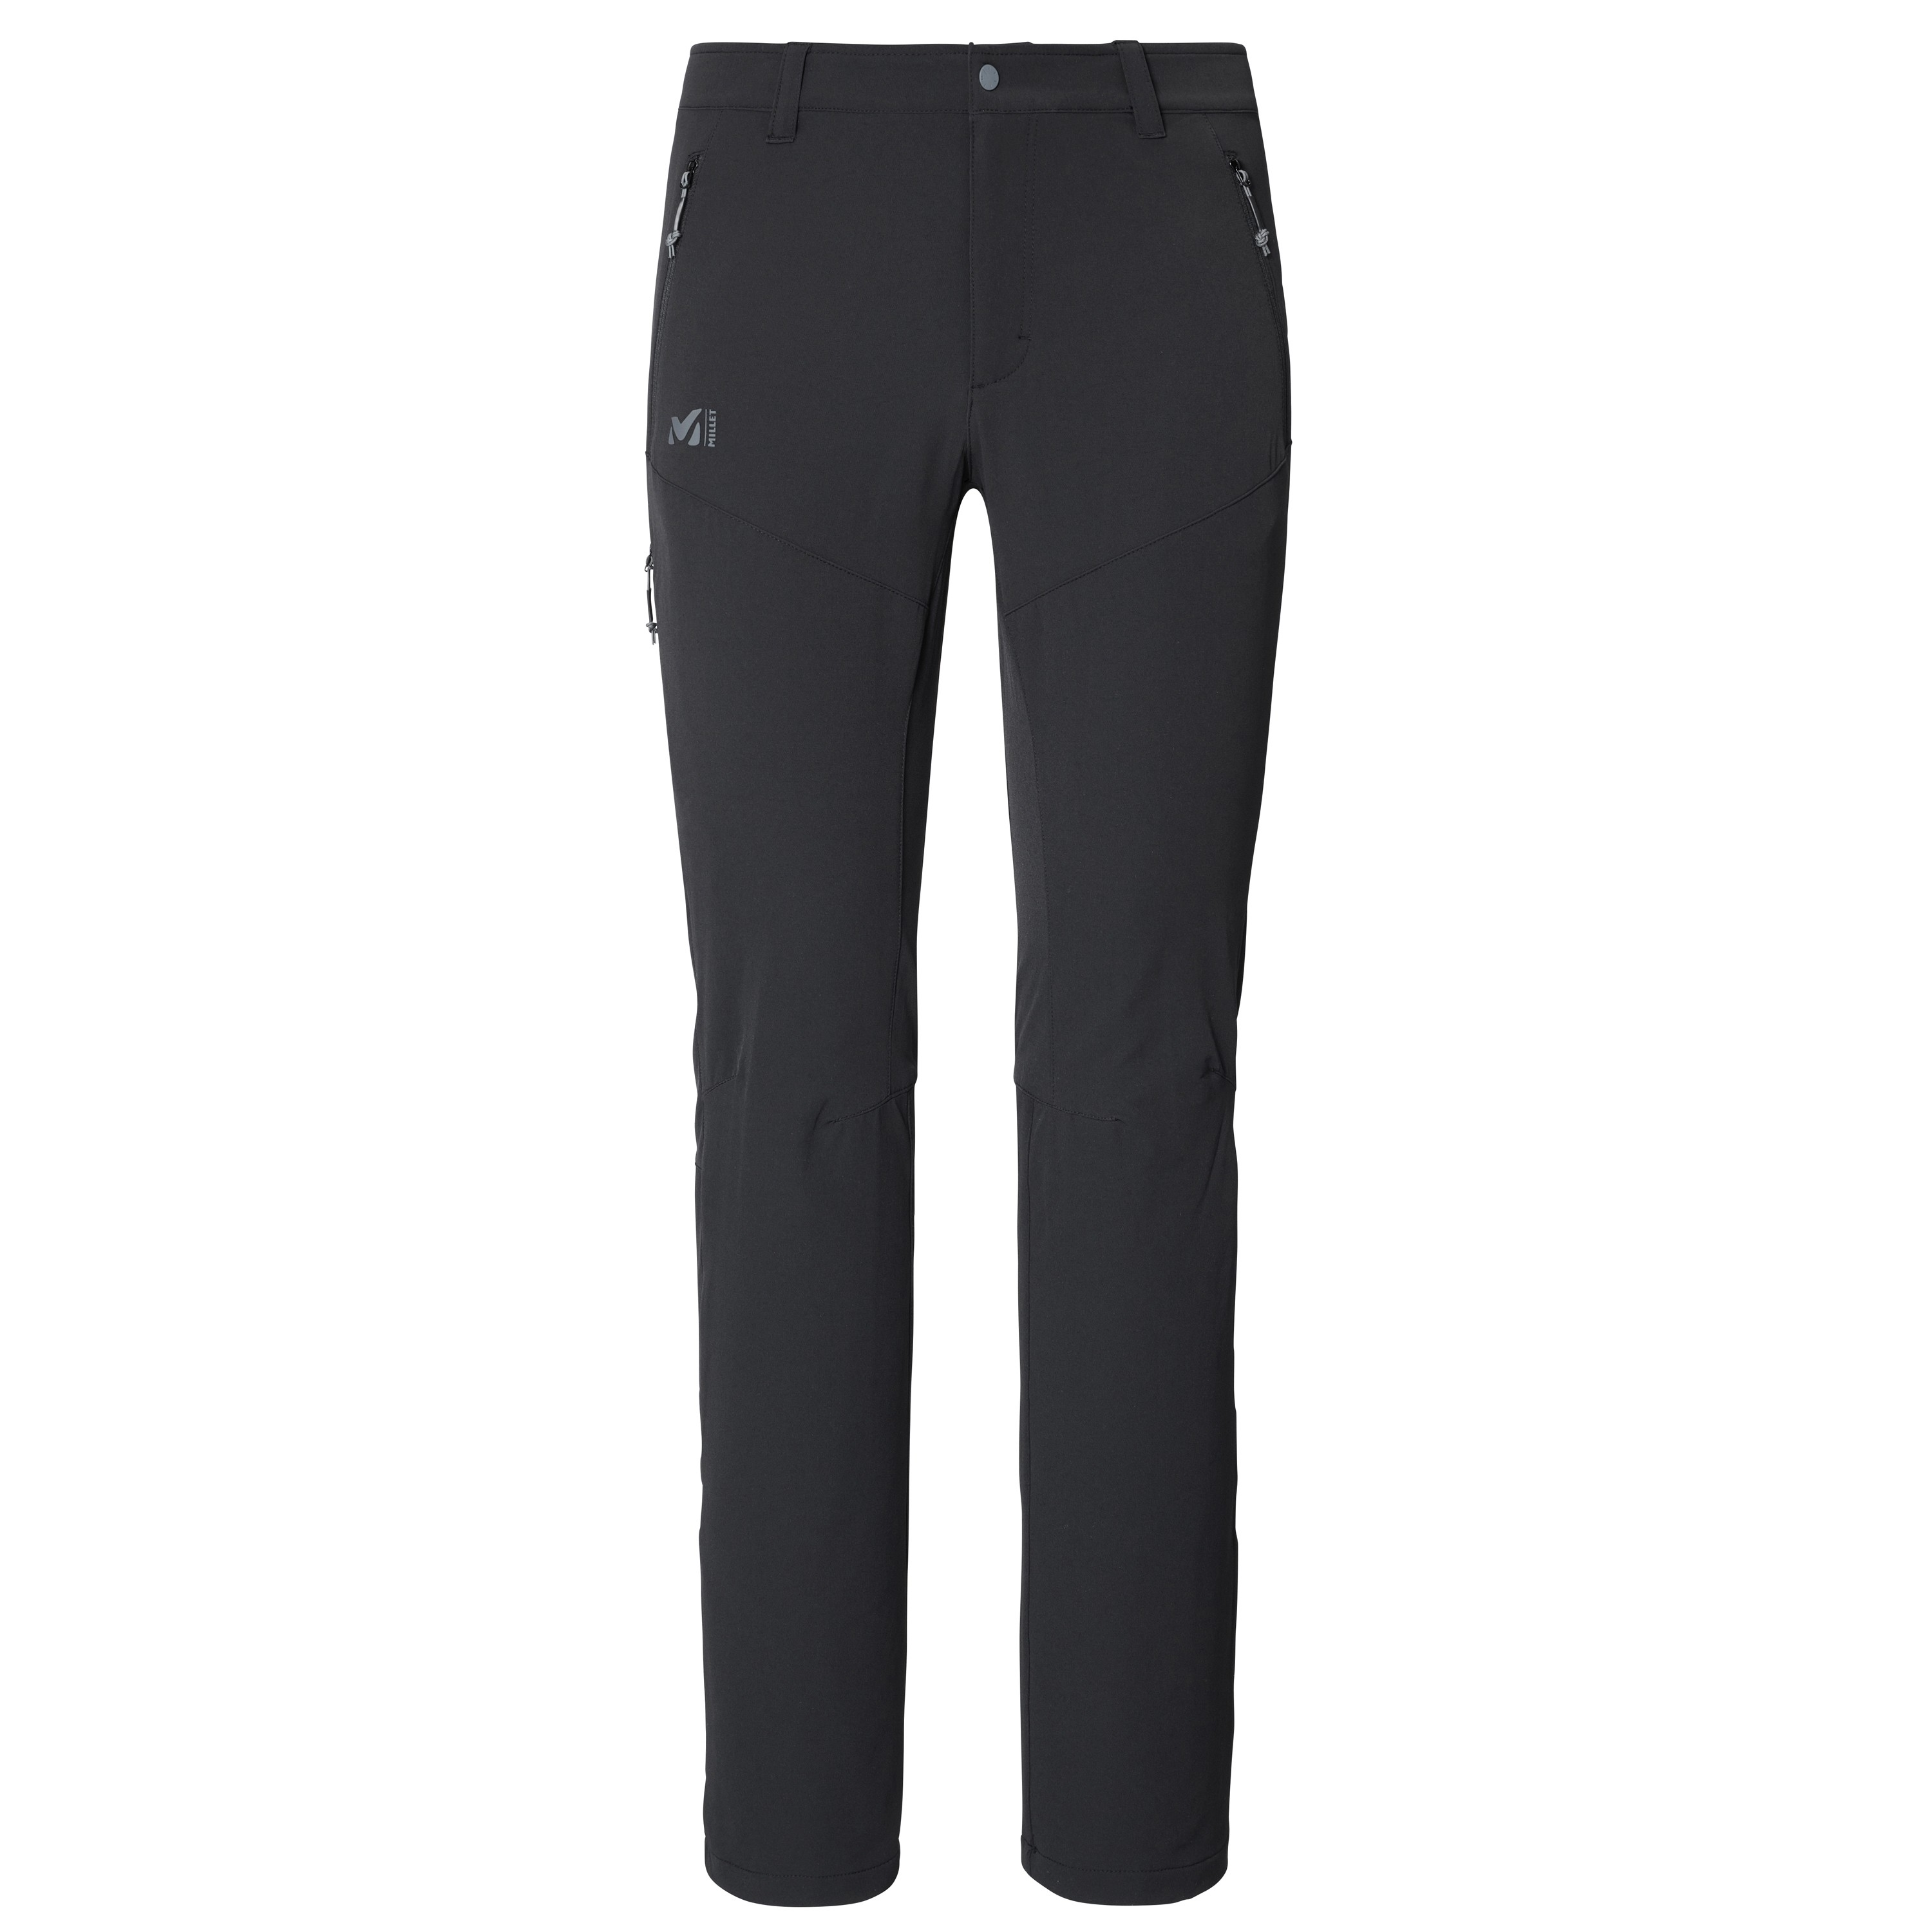 ALL OUTDOOR III PANT M